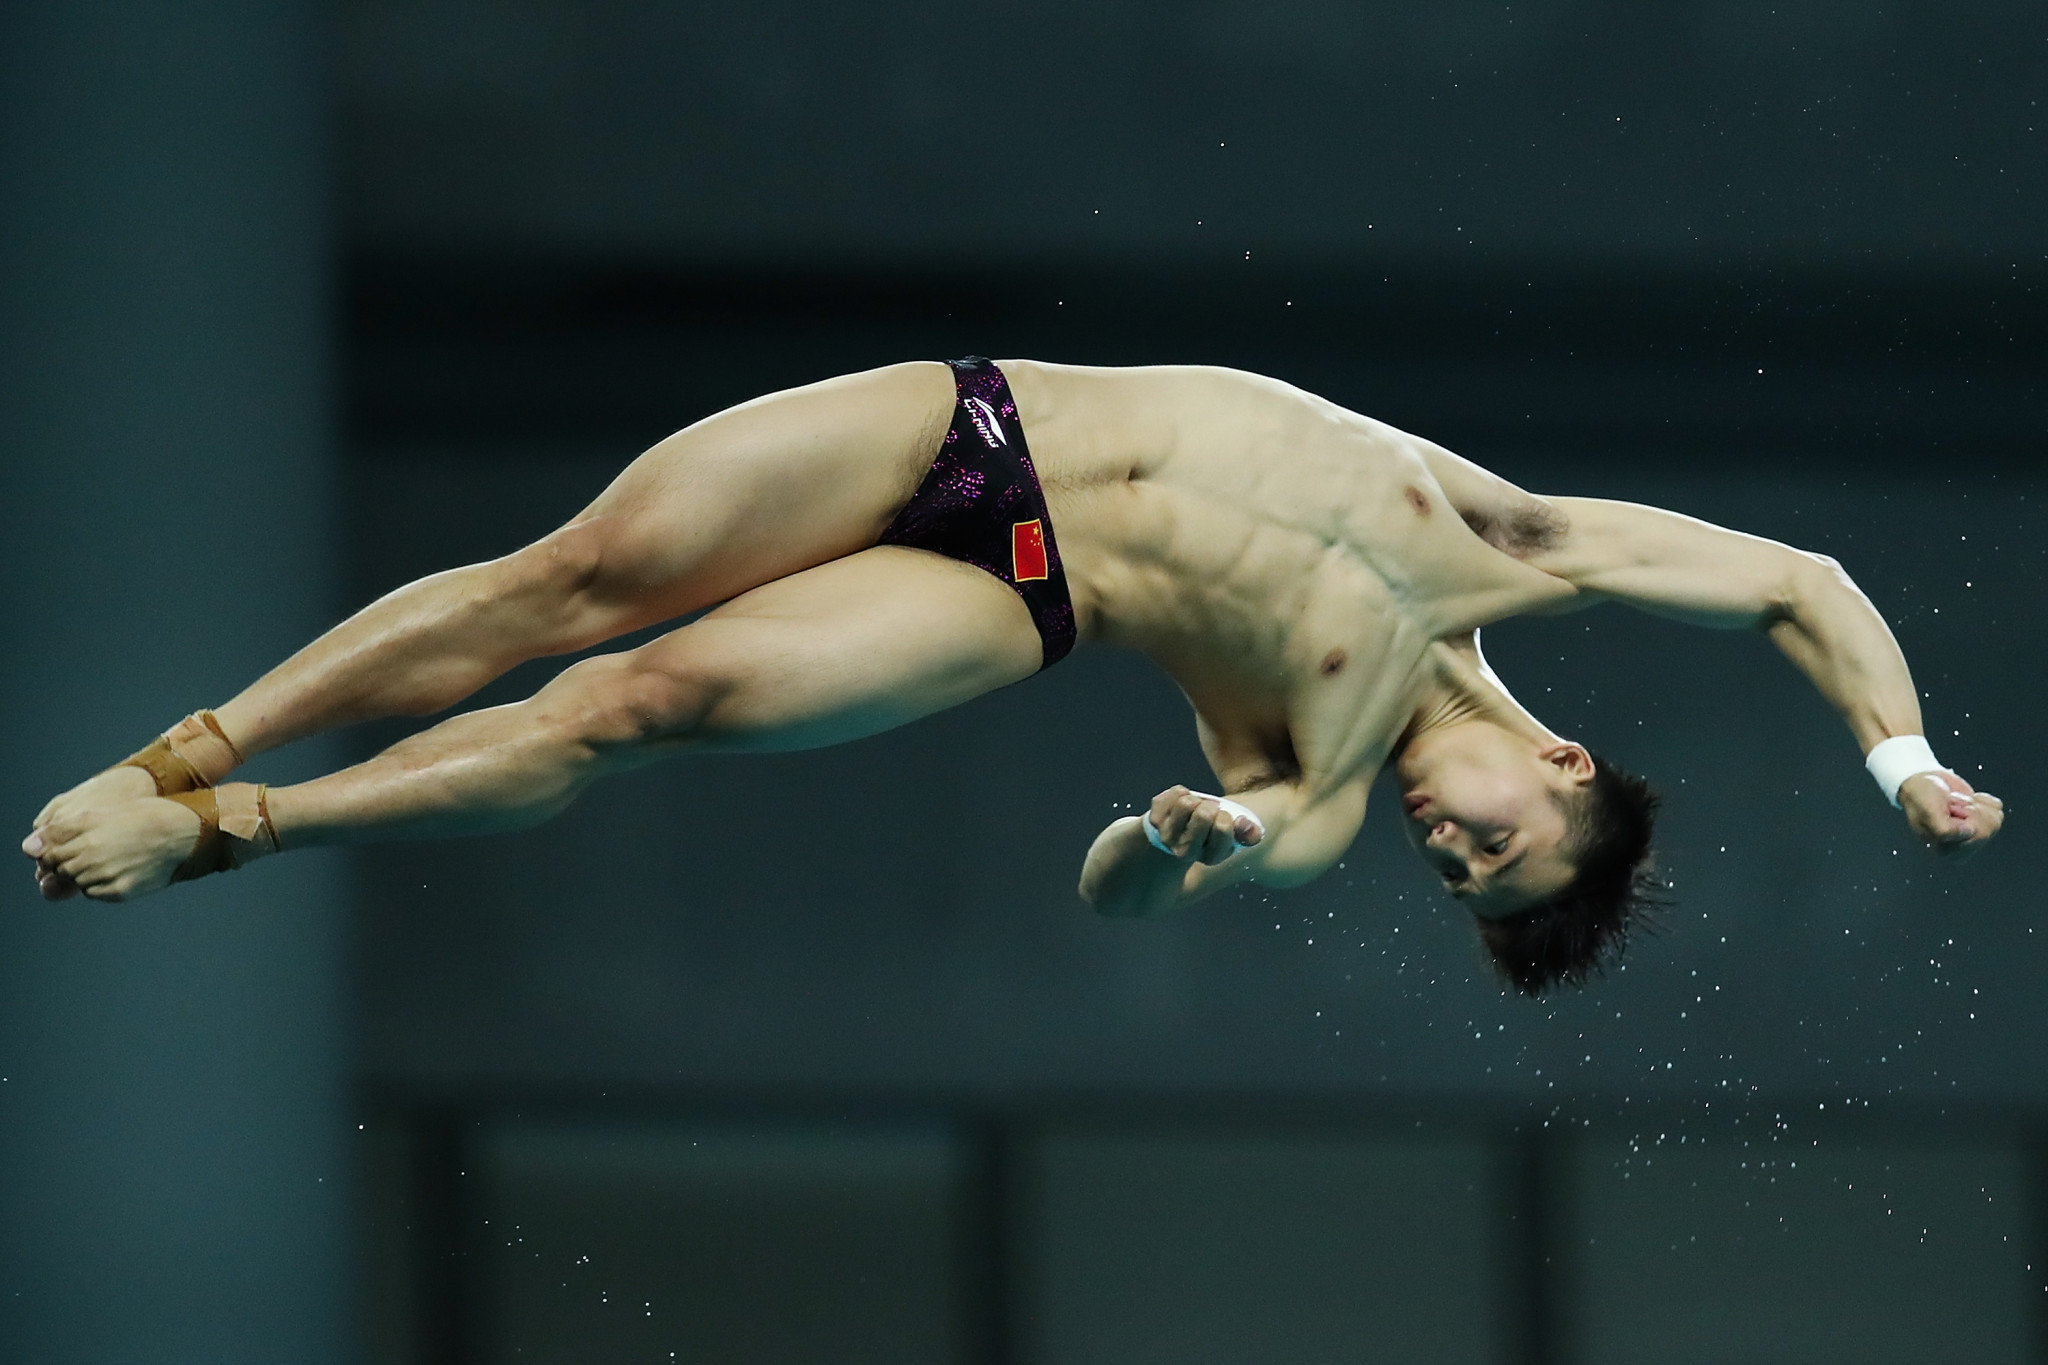 Hosts China eye success at opening Diving World Series event in Beijing